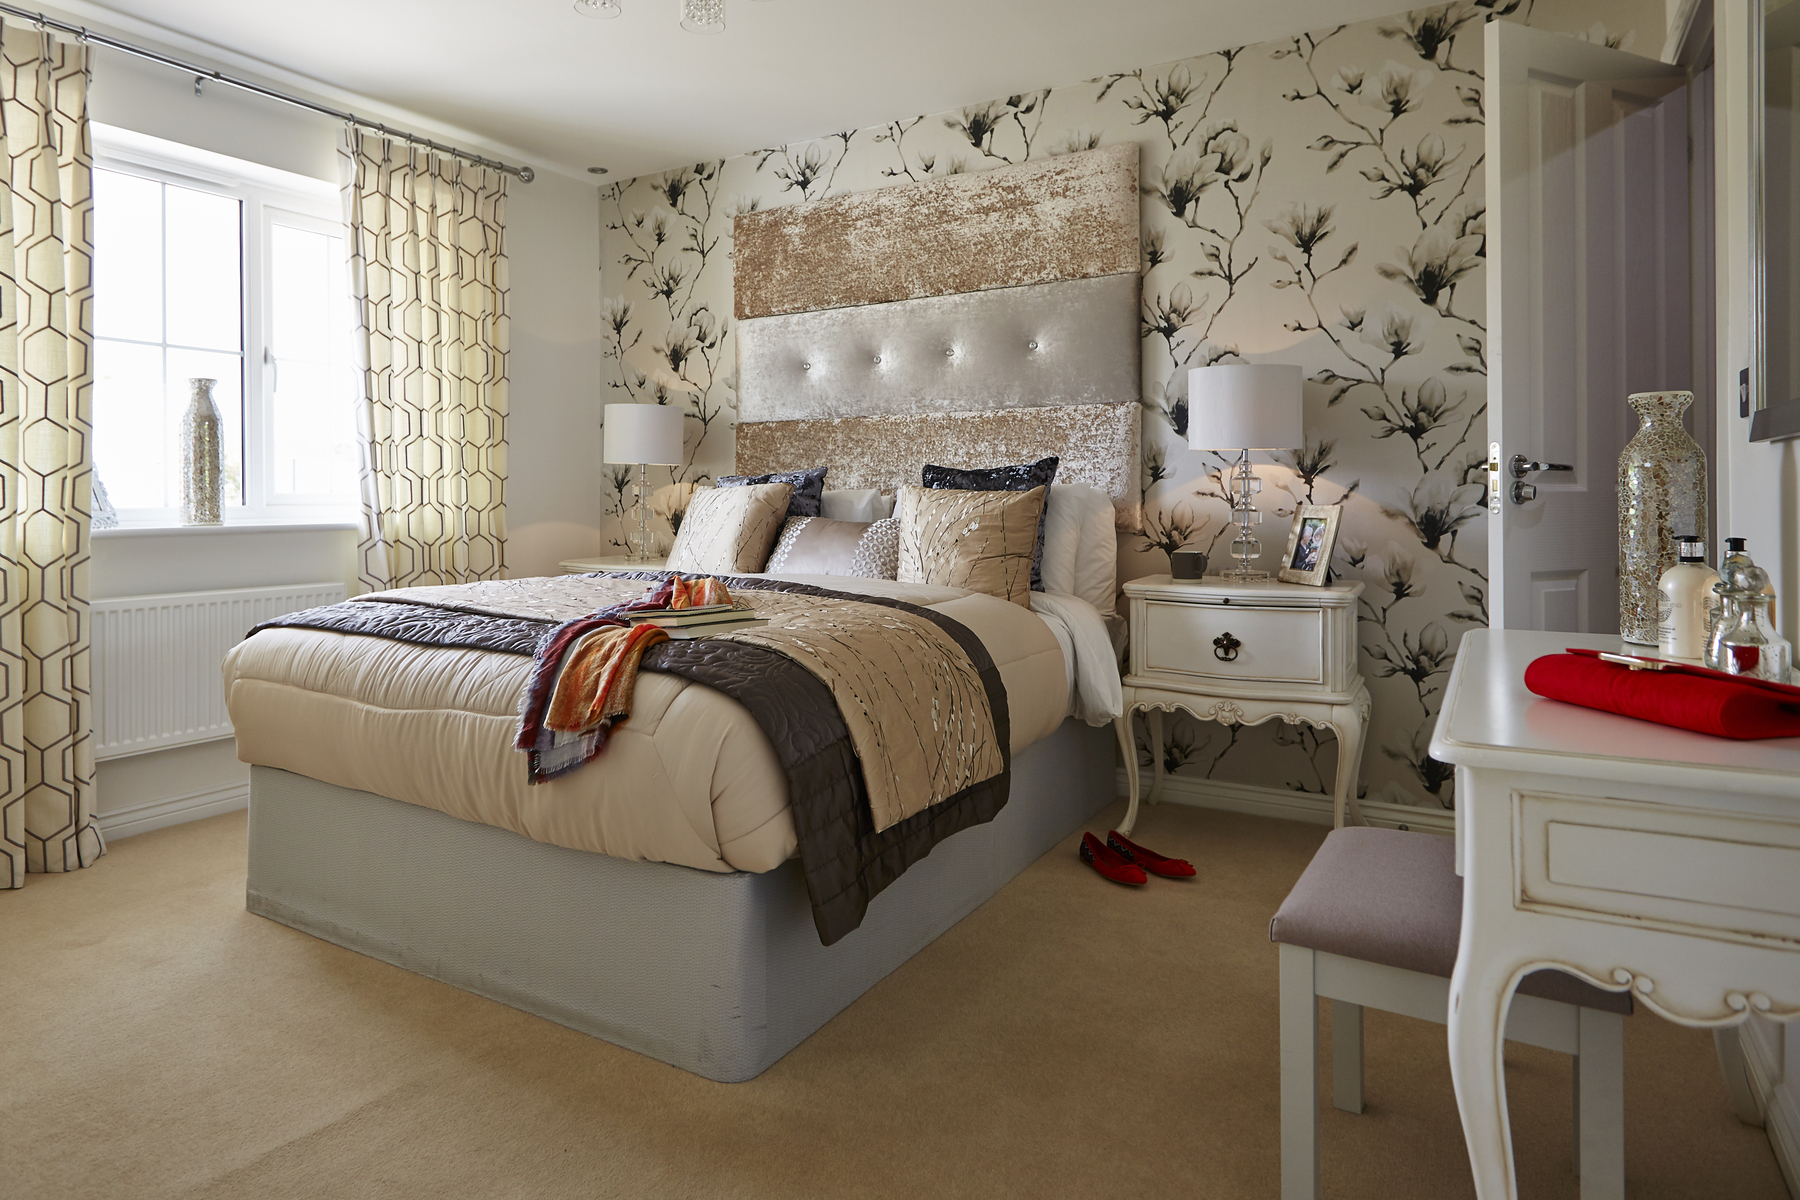 tw_swales_kingsmead_caerphilly_pa44_midford_master_bedroom